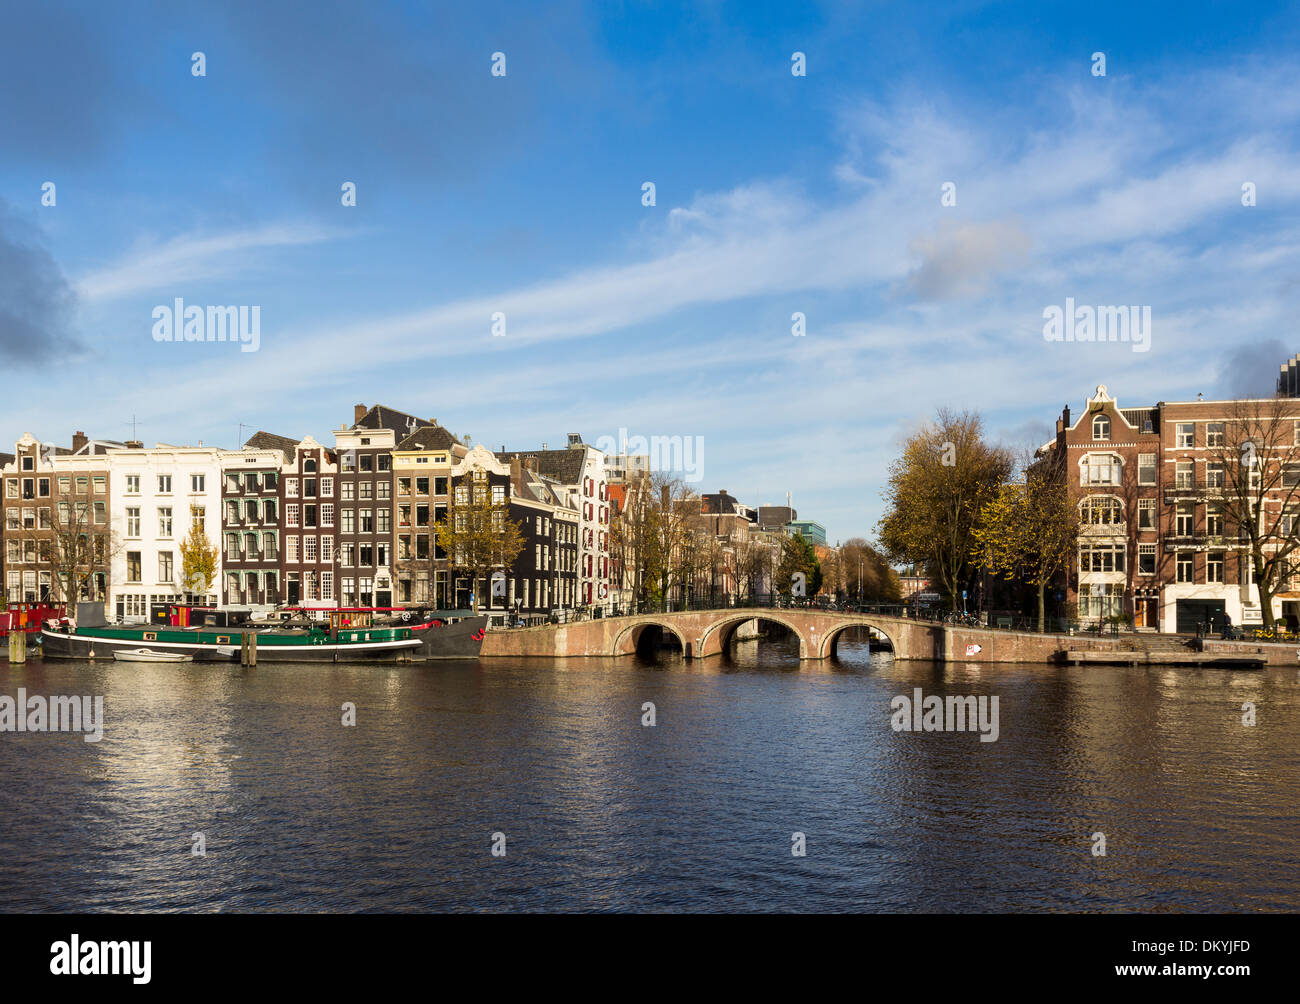 BRIDGE OVER THE NIEUWE PRINSENGRACHT CANAL SEEN FROM THE AMSTEL RIVER AMSTERDAM NETHERLANDS - Stock Image